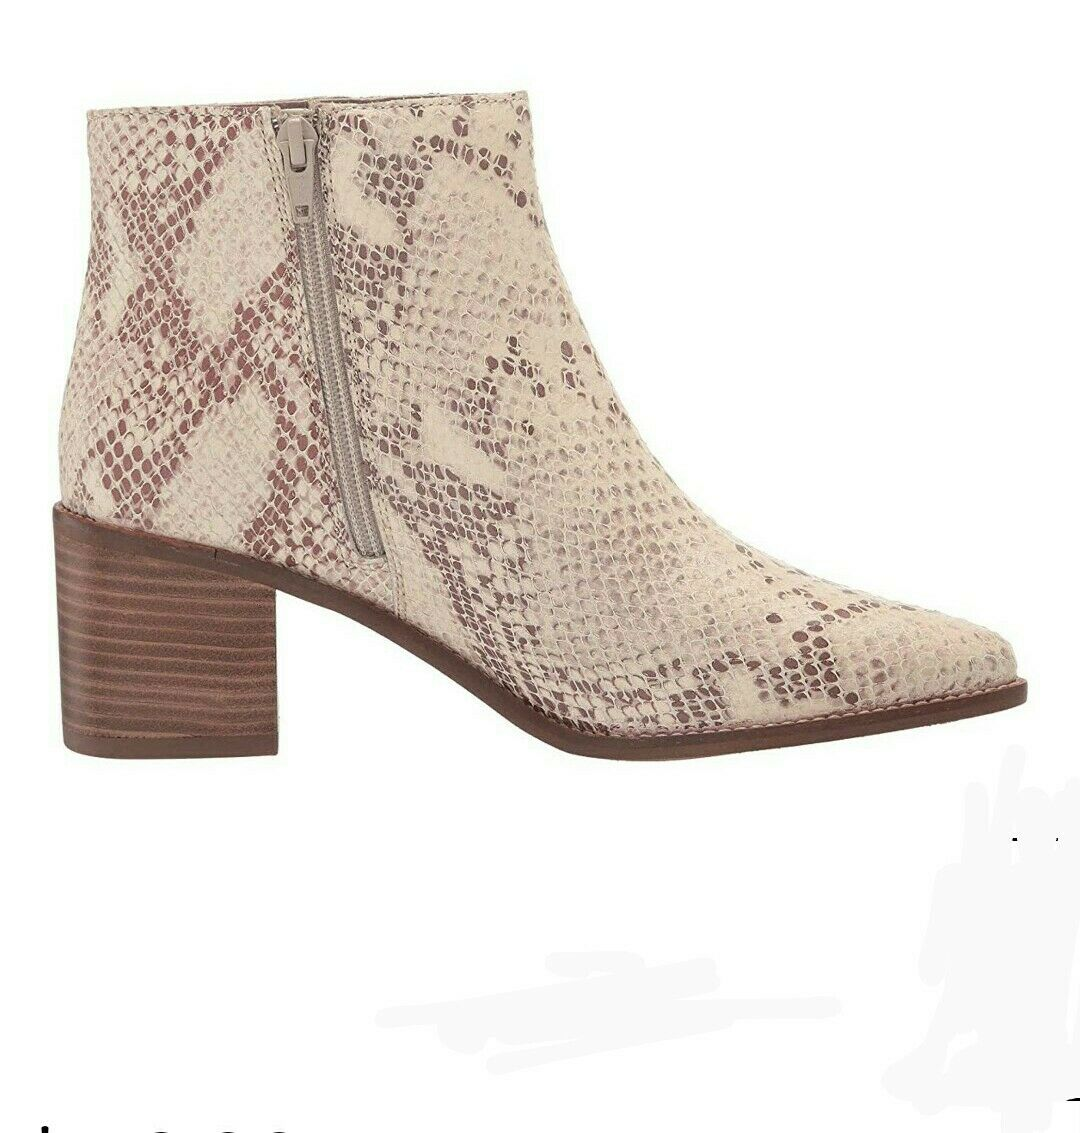 NEW Seychelles Women's for The Occasion leather Boot, Natural Exotic, Size 8.0